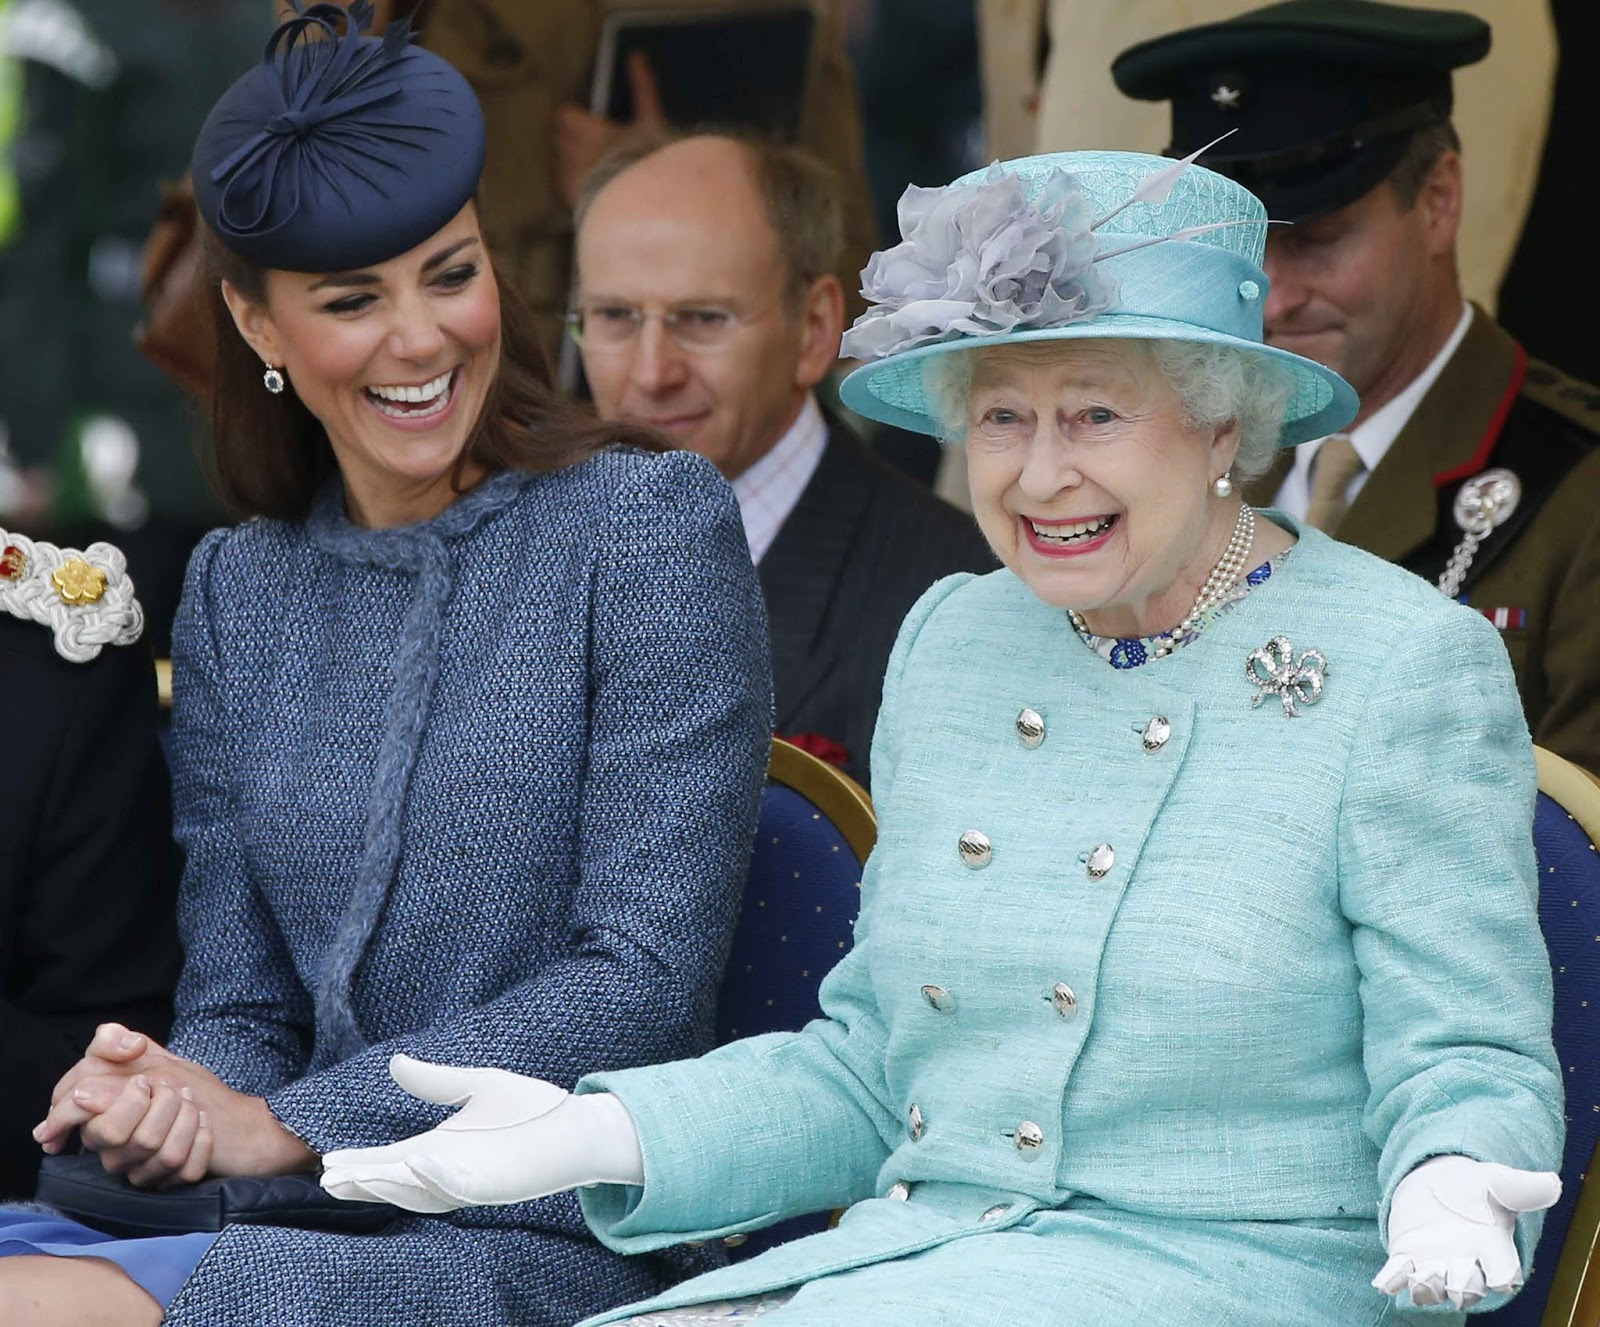 Janie Junebug Righting & Editing: TROOPING THE COLOUR 2019